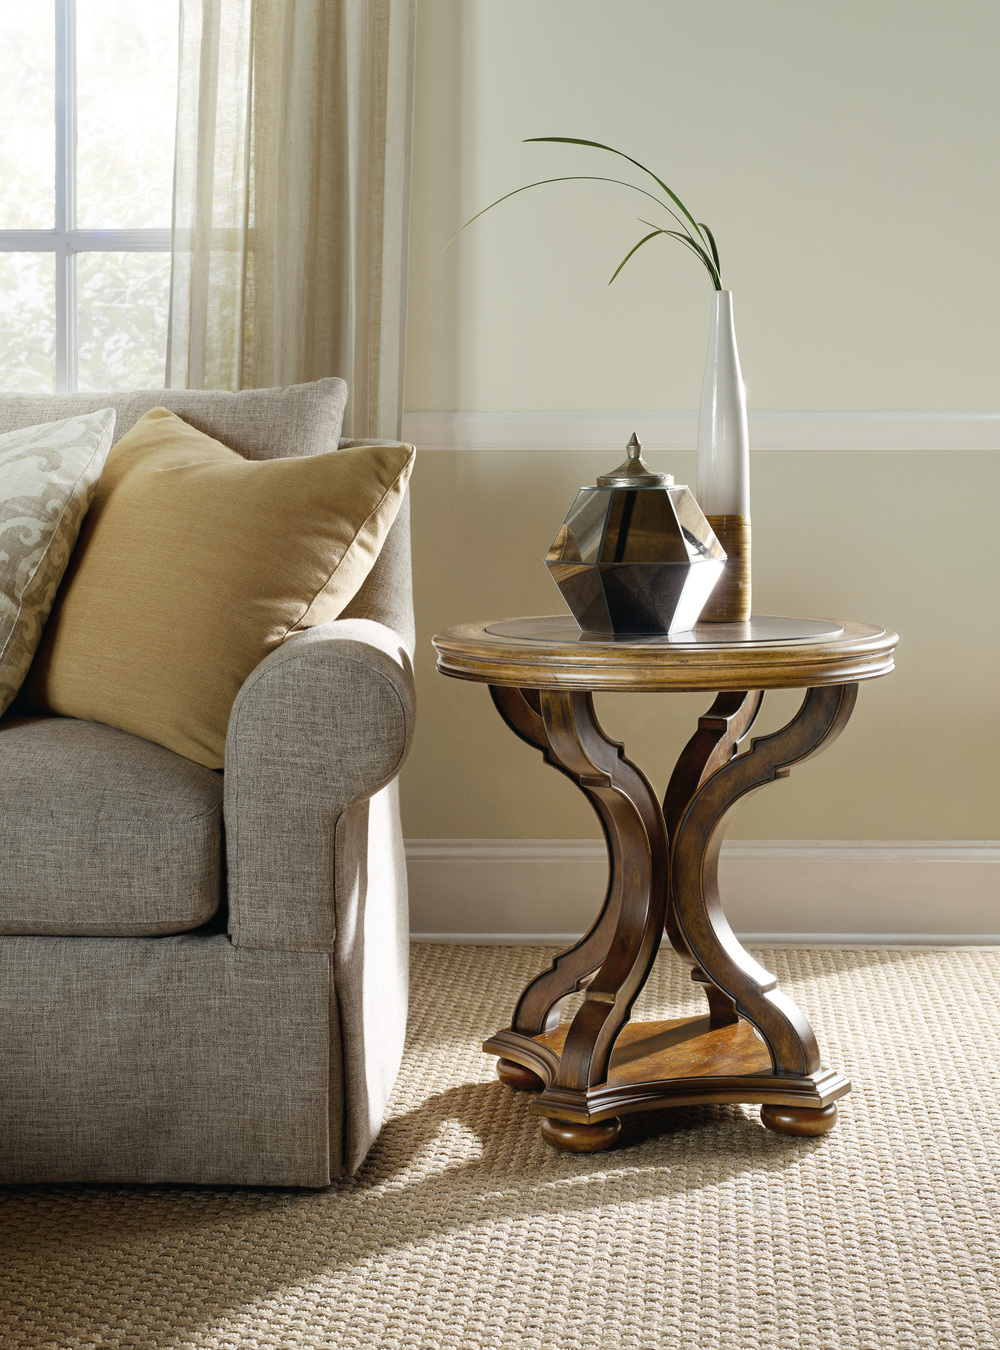 Hooker Furniture - Archivist Round End Table